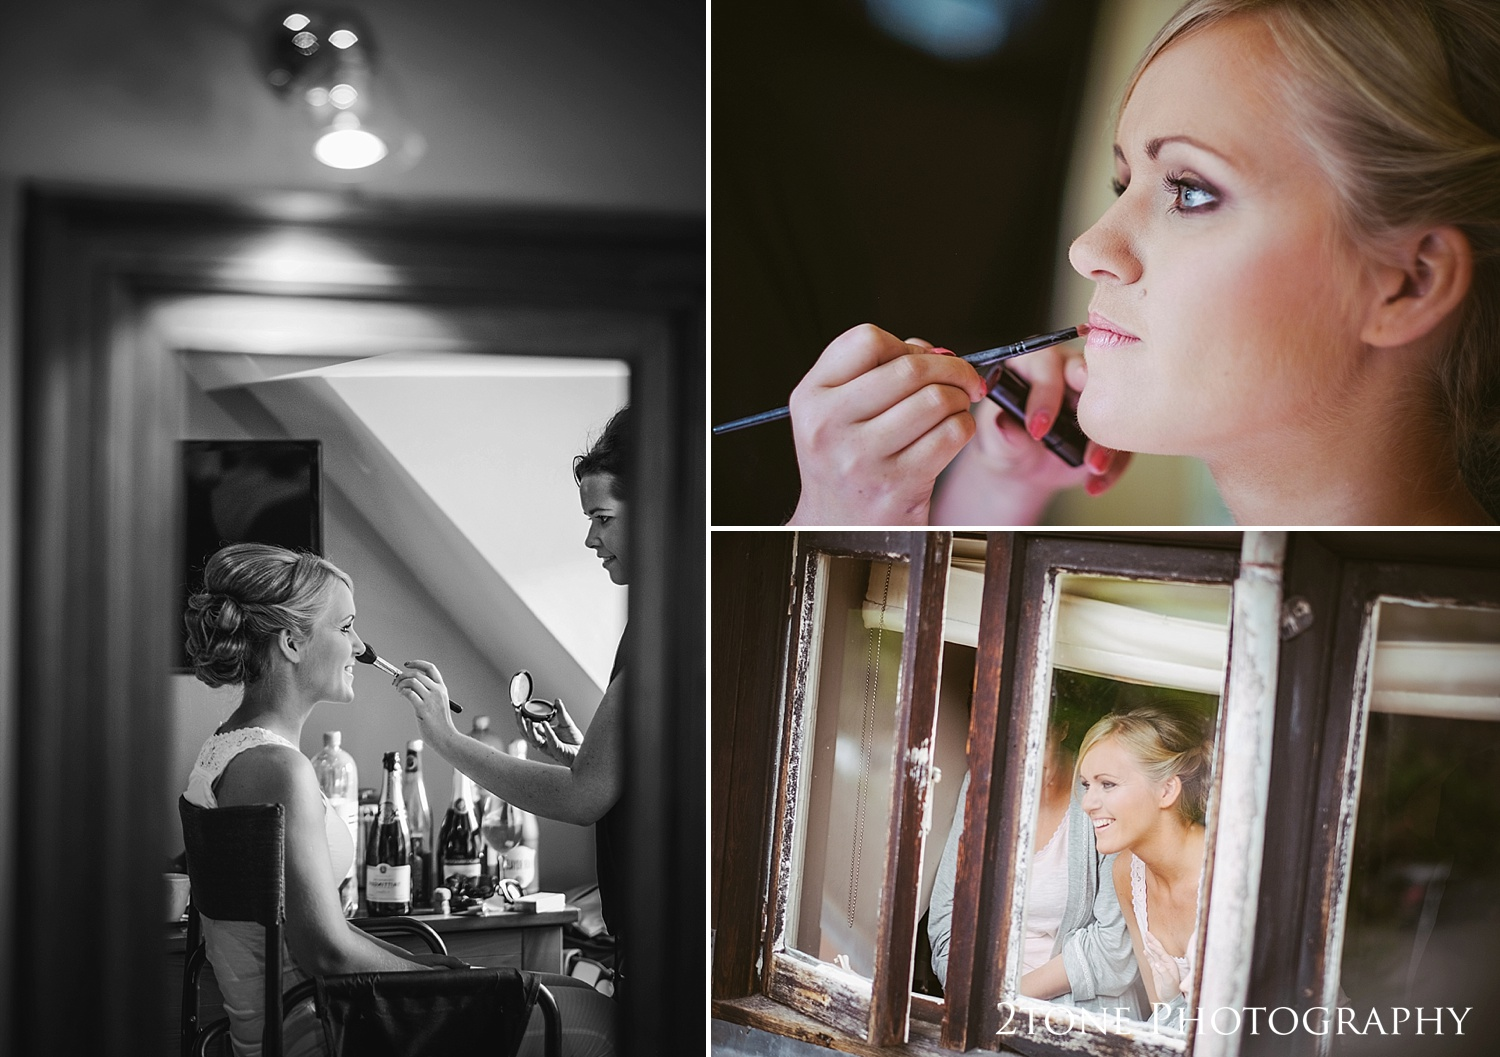 Bridal preparations at Jesmond Dene House in Newcastle by 2tone Photography www.2tonephotography.co.uk